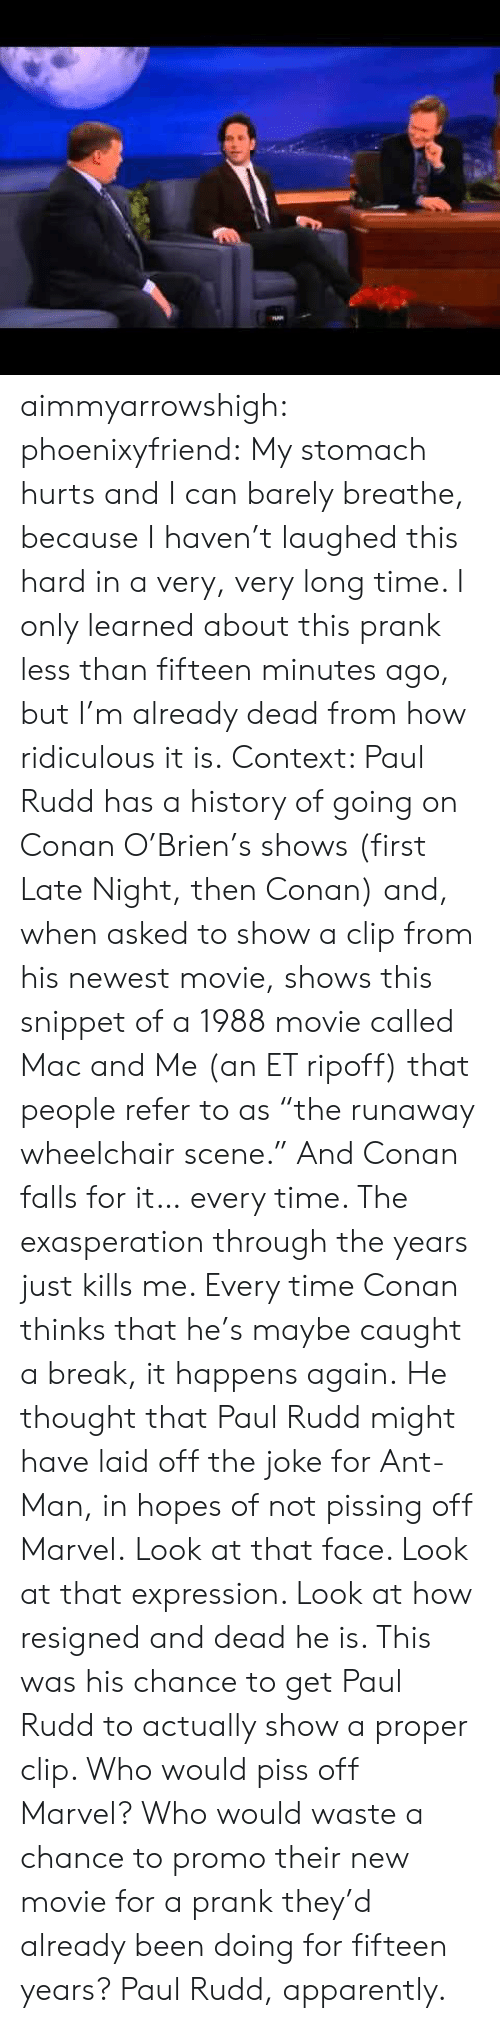 """paul rudd: aimmyarrowshigh:  phoenixyfriend:  My stomach hurts and I can barely breathe, because I haven't laughed this hard in a very, verylong time. I only learned about this prank less than fifteen minutes ago, but I'm already dead from how ridiculous it is. Context: Paul Rudd has a history of going on Conan O'Brien's shows (first Late Night, then Conan) and, when asked to show a clip from his newest movie, shows this snippet of a 1988 movie called Mac and Me (an ET ripoff) that people refer to as """"the runaway wheelchair scene."""" And Conan falls for it… every time. The exasperation through the years just killsme. Every time Conan thinks that he's maybe caught a break, it happens again. He thought that Paul Rudd might have laid off the joke for Ant-Man, in hopes of not pissing off Marvel. Look at that face. Look at that expression. Look at how resigned and dead he is. This was his chance to get Paul Rudd to actually show a proper clip. Who would piss off Marvel? Who would waste a chance to promo their new movie for a prank they'd already been doing for fifteen years? Paul Rudd, apparently."""